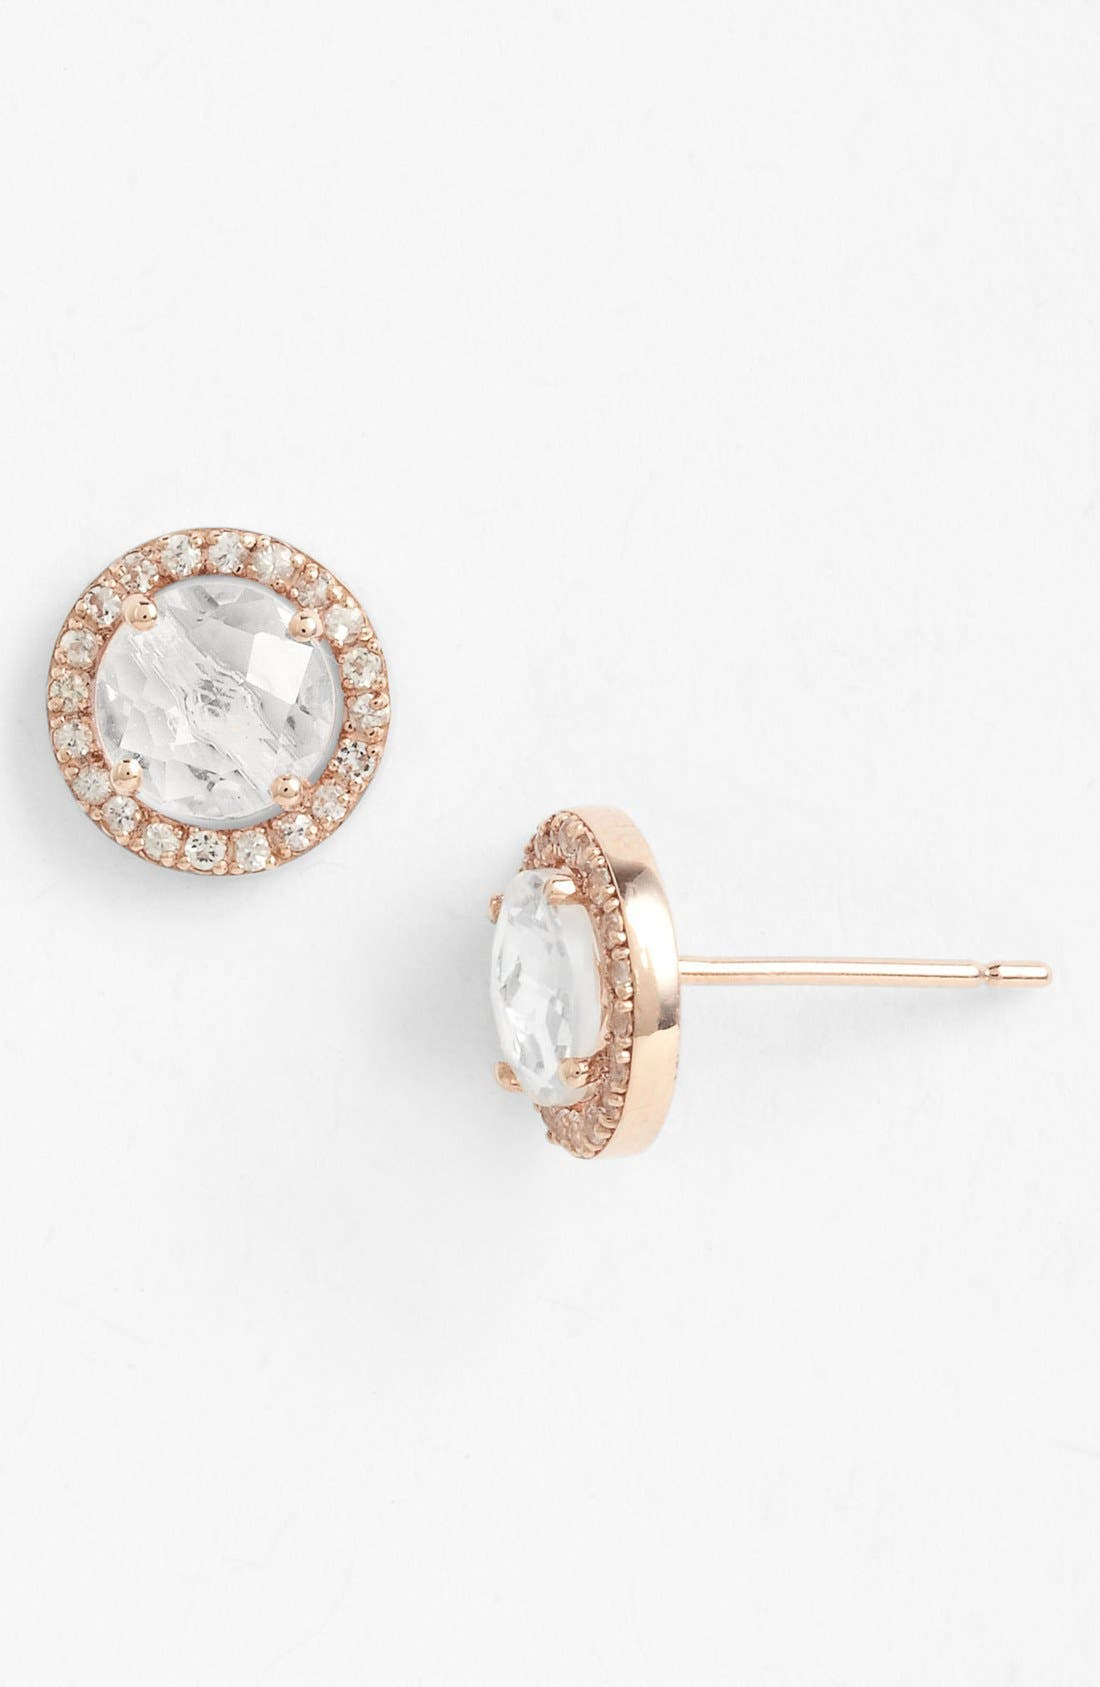 Main Image - KALAN by Suzanne Kalan Round Sapphire Bezel Earrings